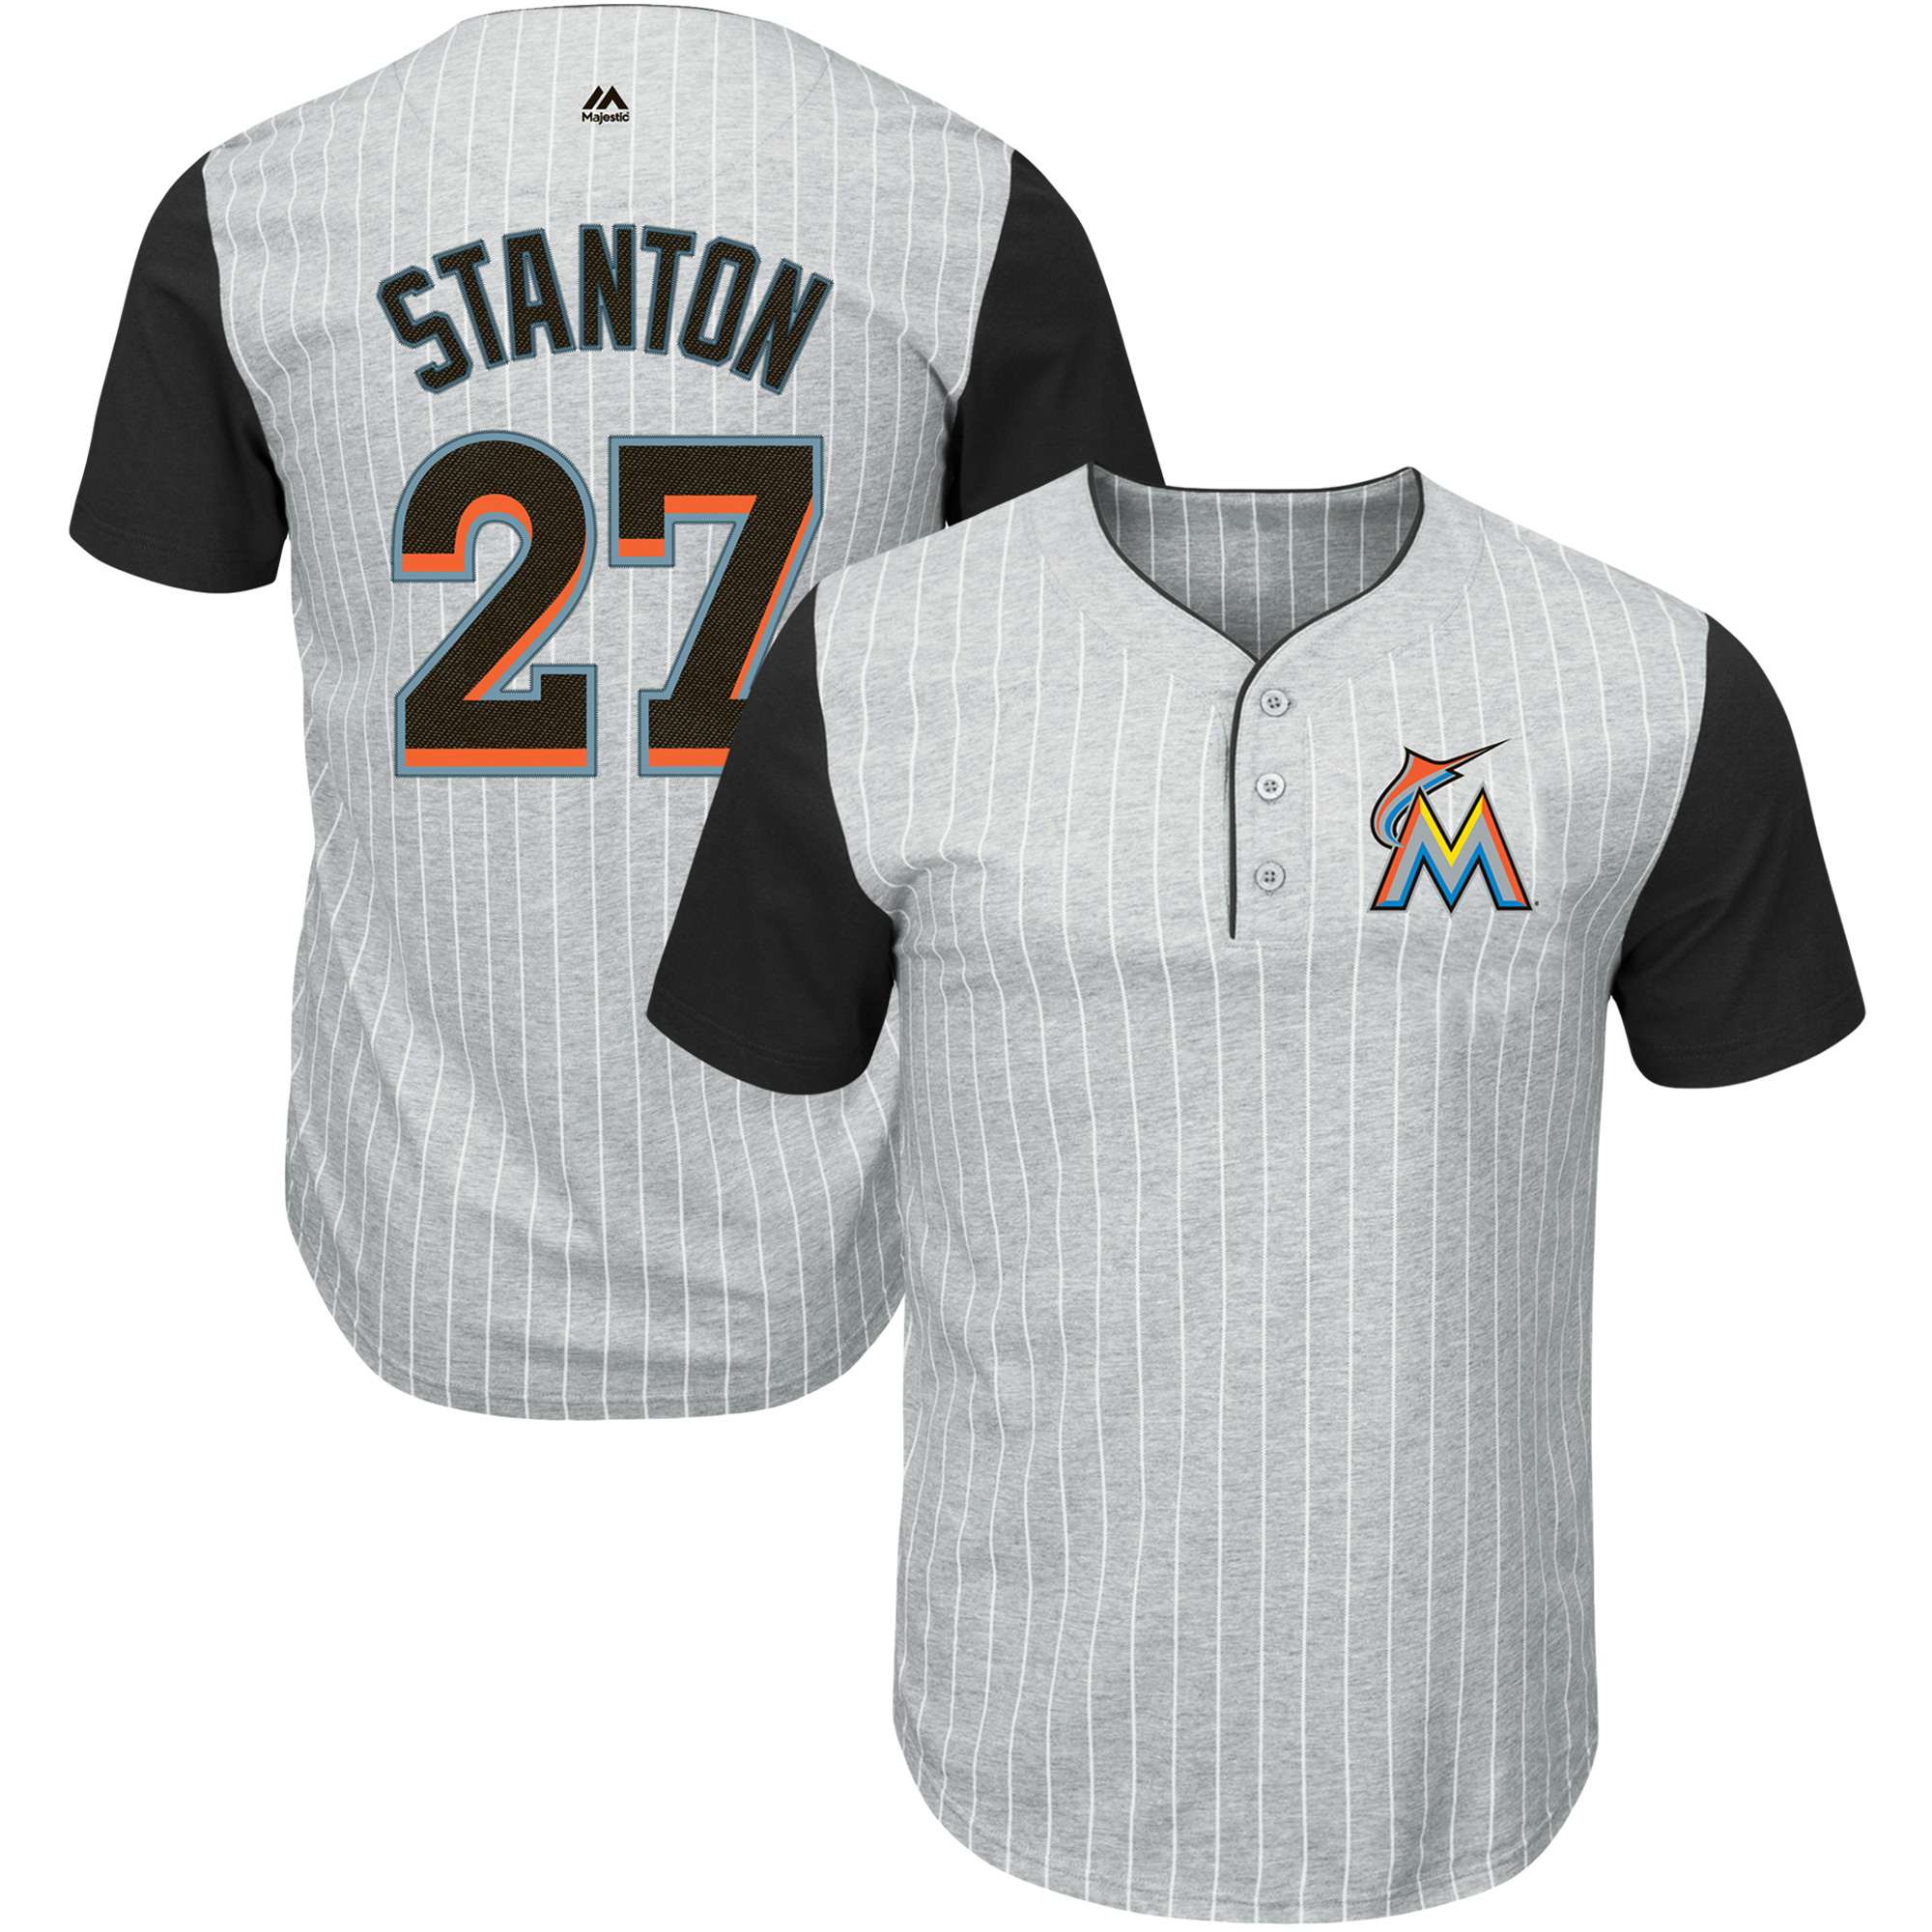 Giancarlo Stanton Miami Marlins Majestic From the Stretch Pinstripe T-Shirt - Gray/Black